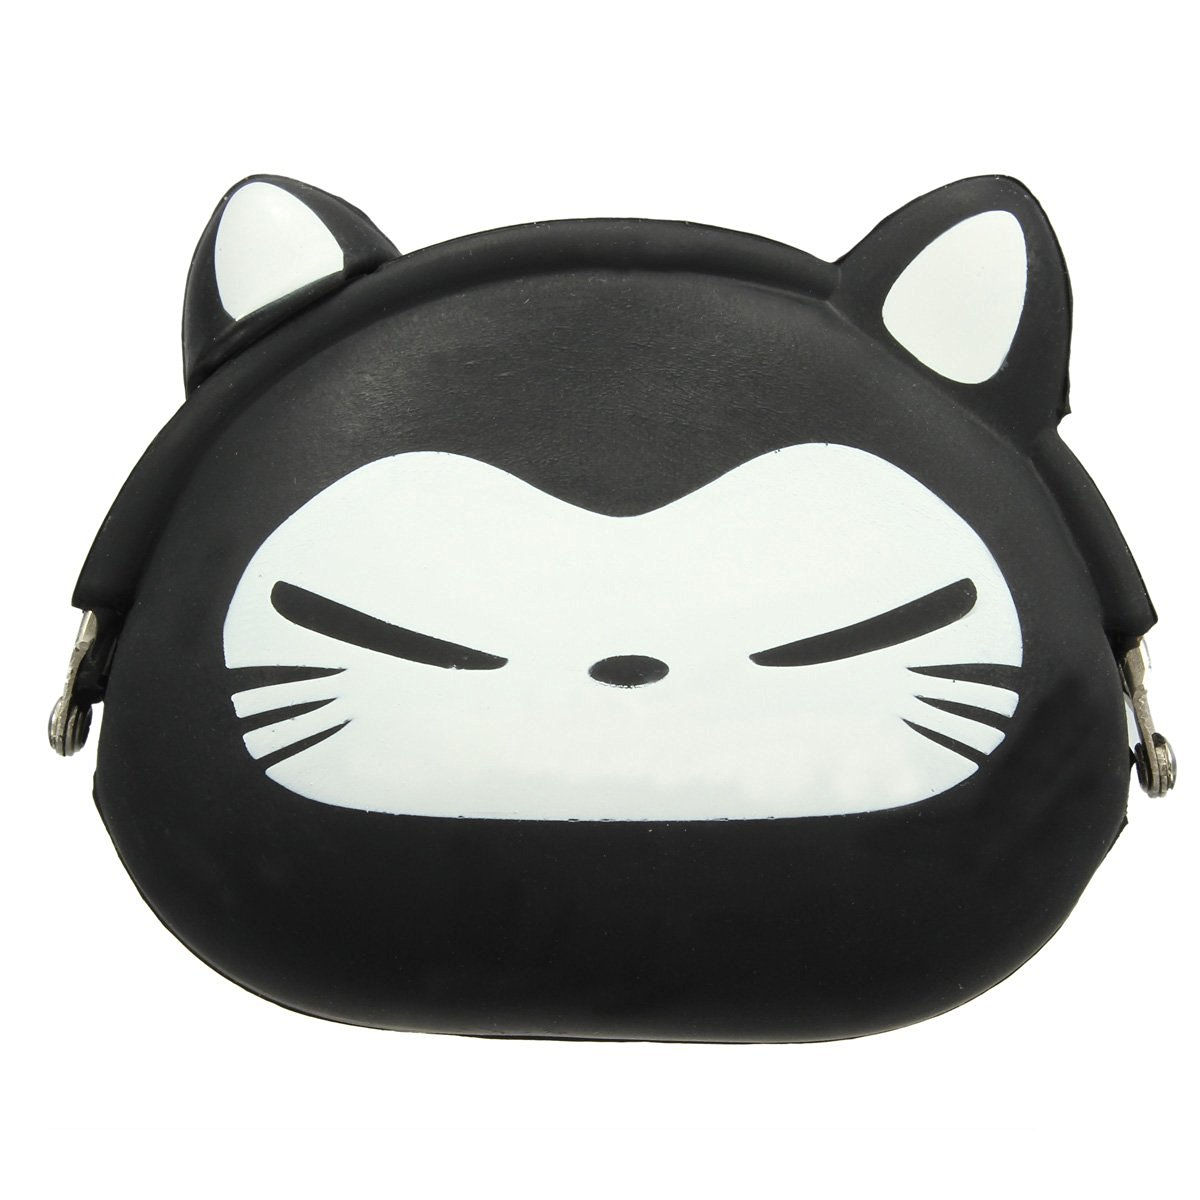 FGGS-Women Girls Wallet Kawaii Cute Cartoon Animal Silicone Jelly Coin Bag Purse Kids Gift Black Fox